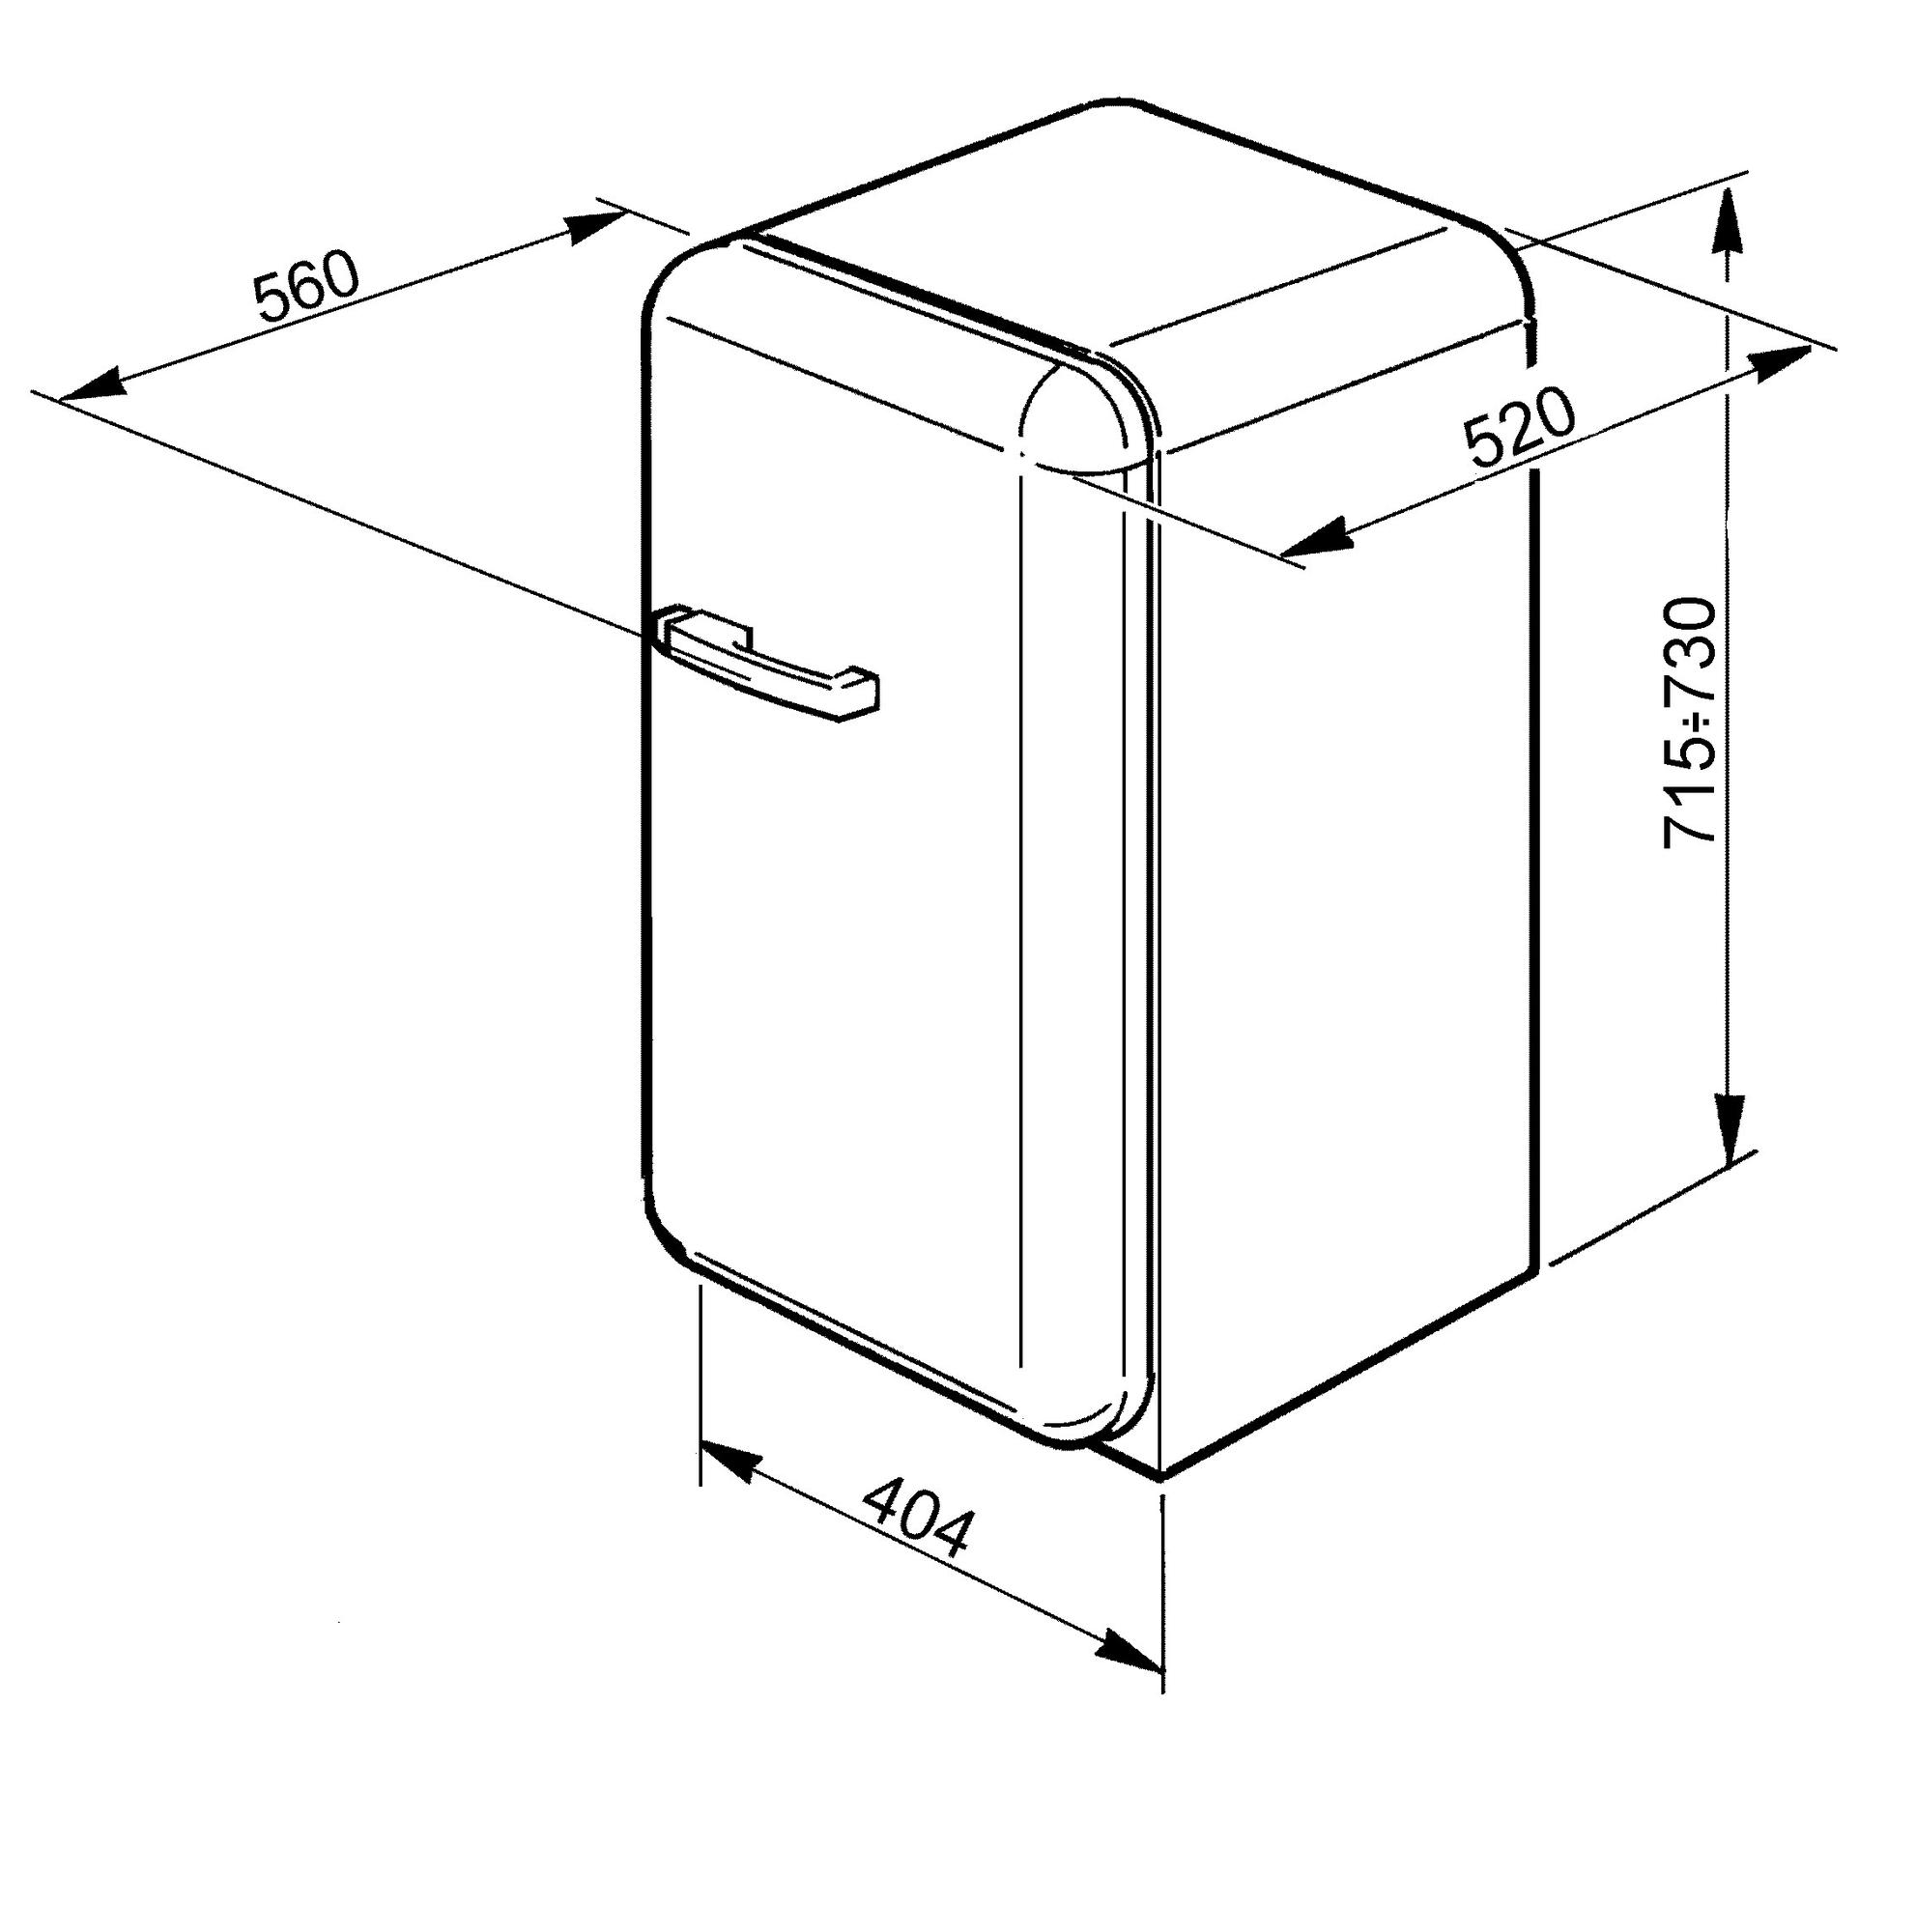 FAB5RUJ1 Smeg 40cm Single Door 50's Retro Style Minibar Fridge Technical Drawing (in mm)